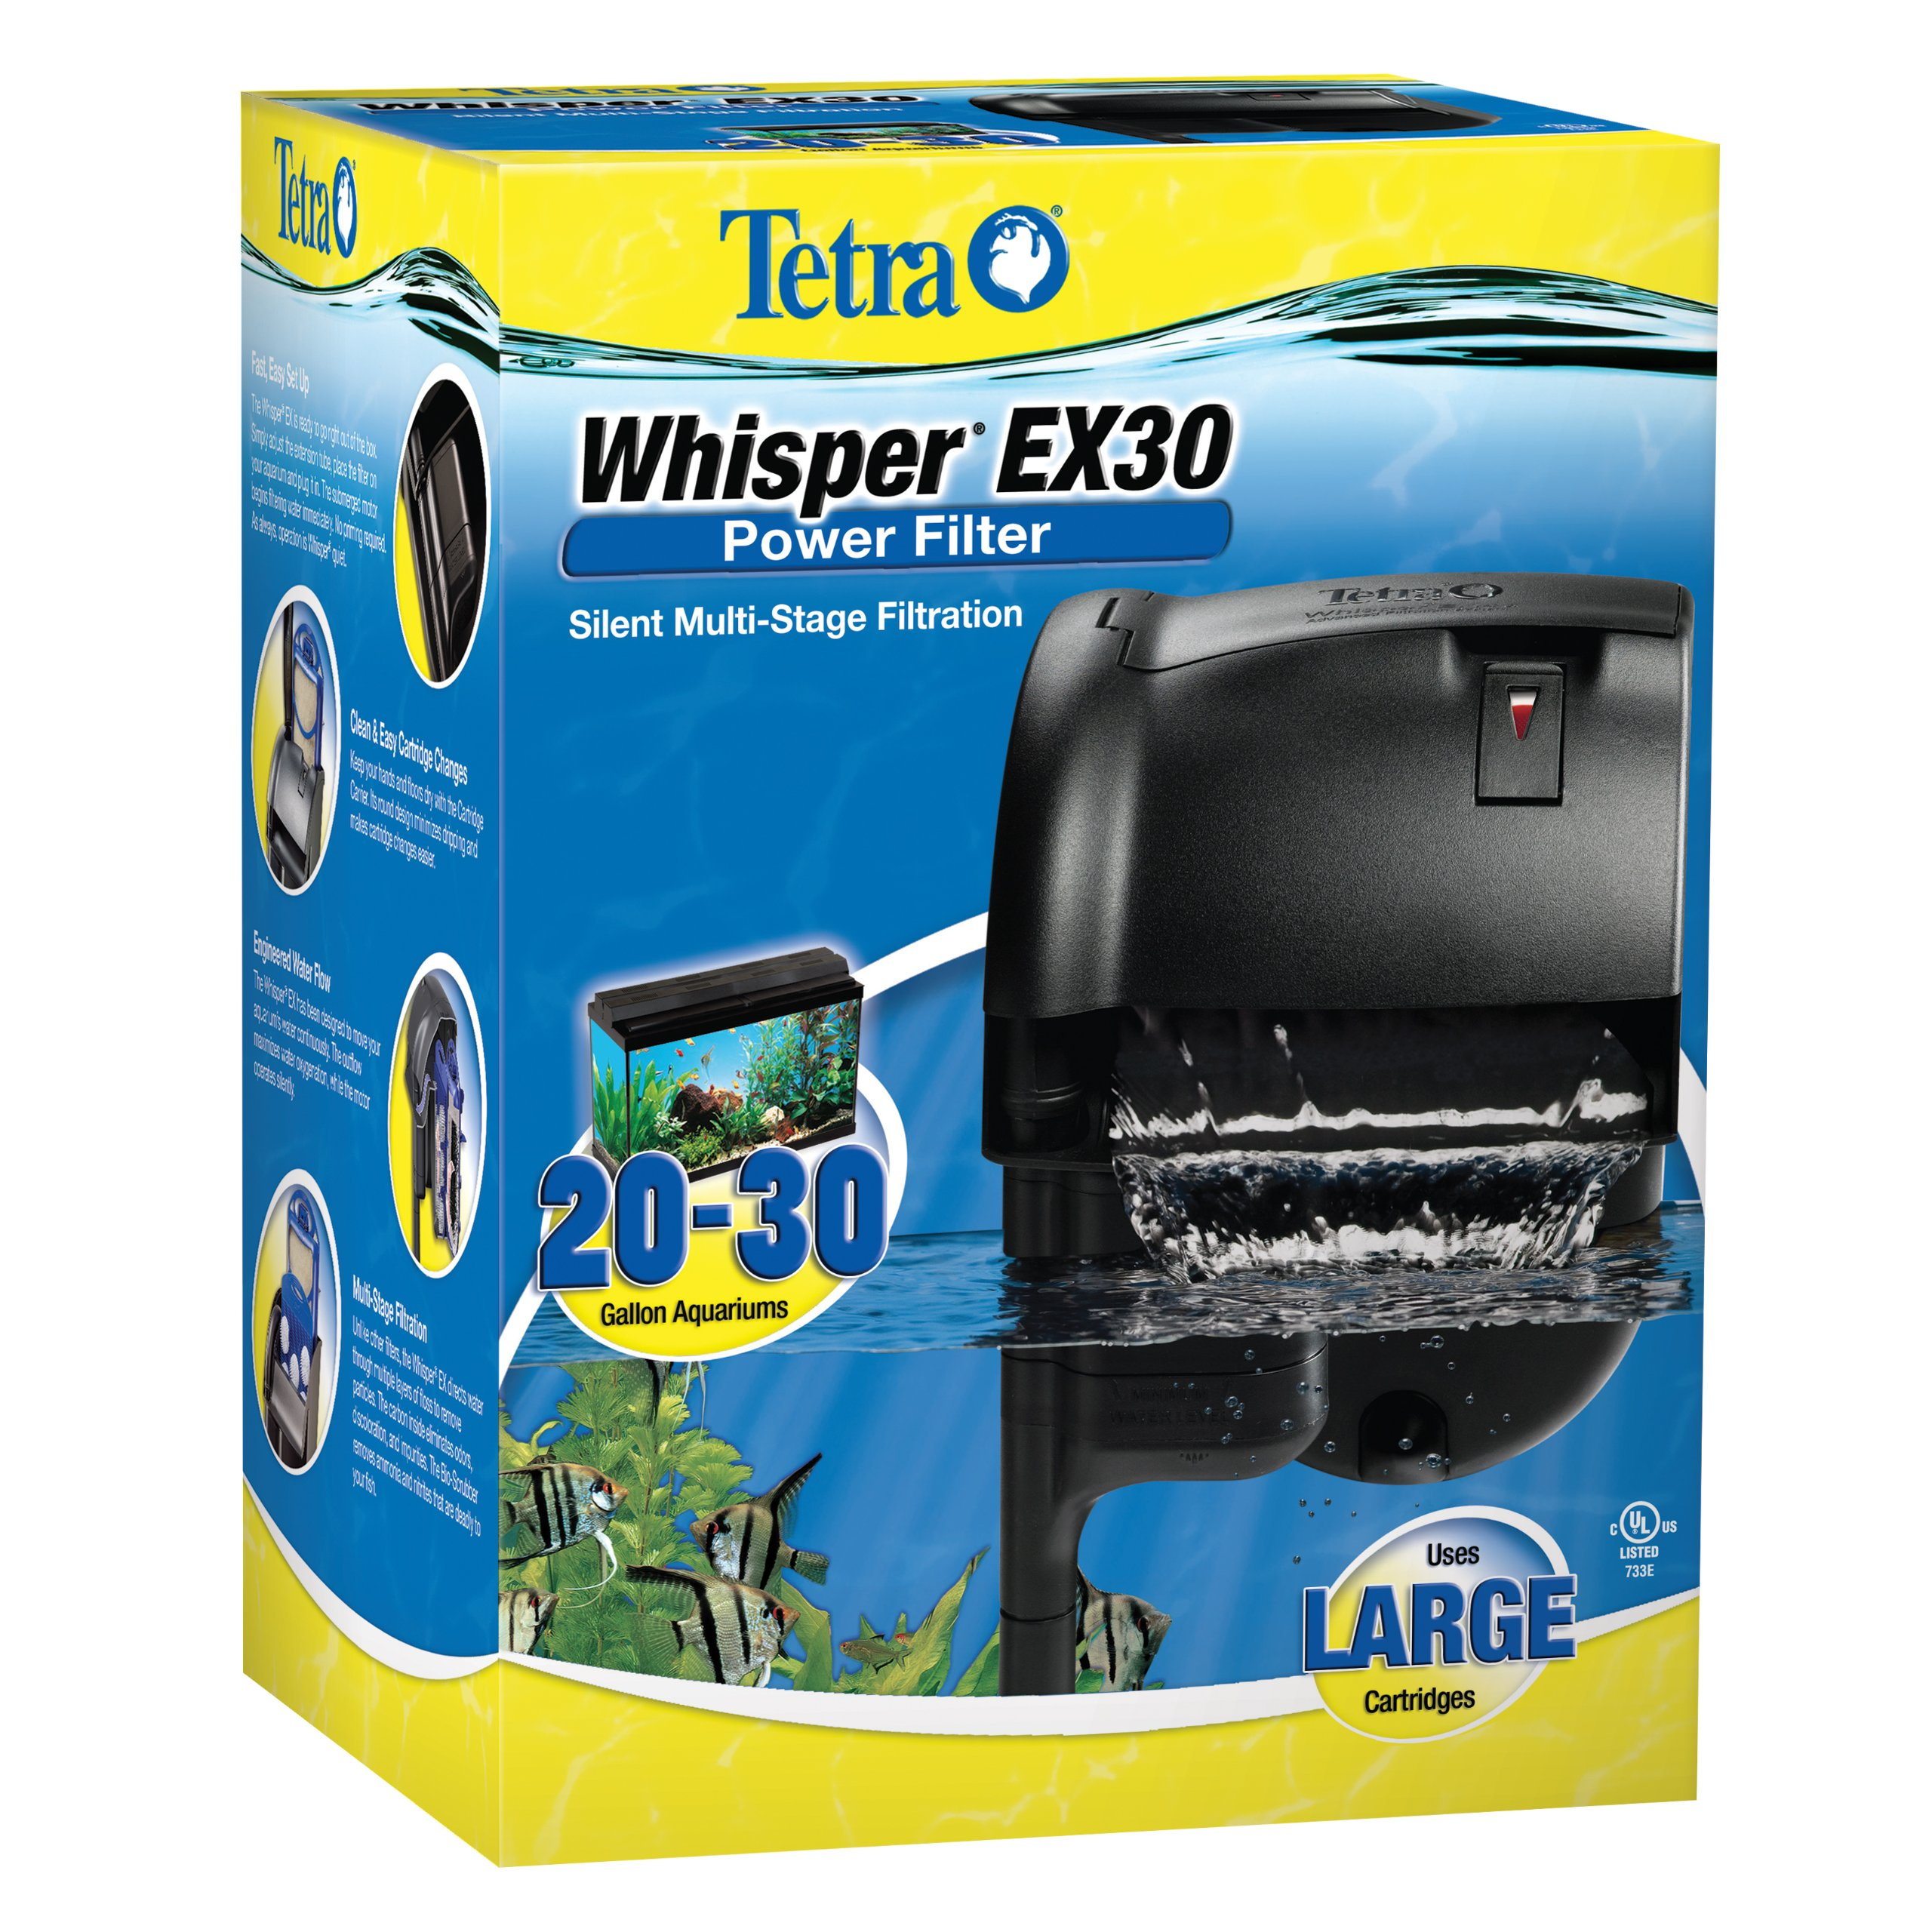 Tetra Whisper EX Silent Multi-Stage Power Filter for Aquariums by Tetra